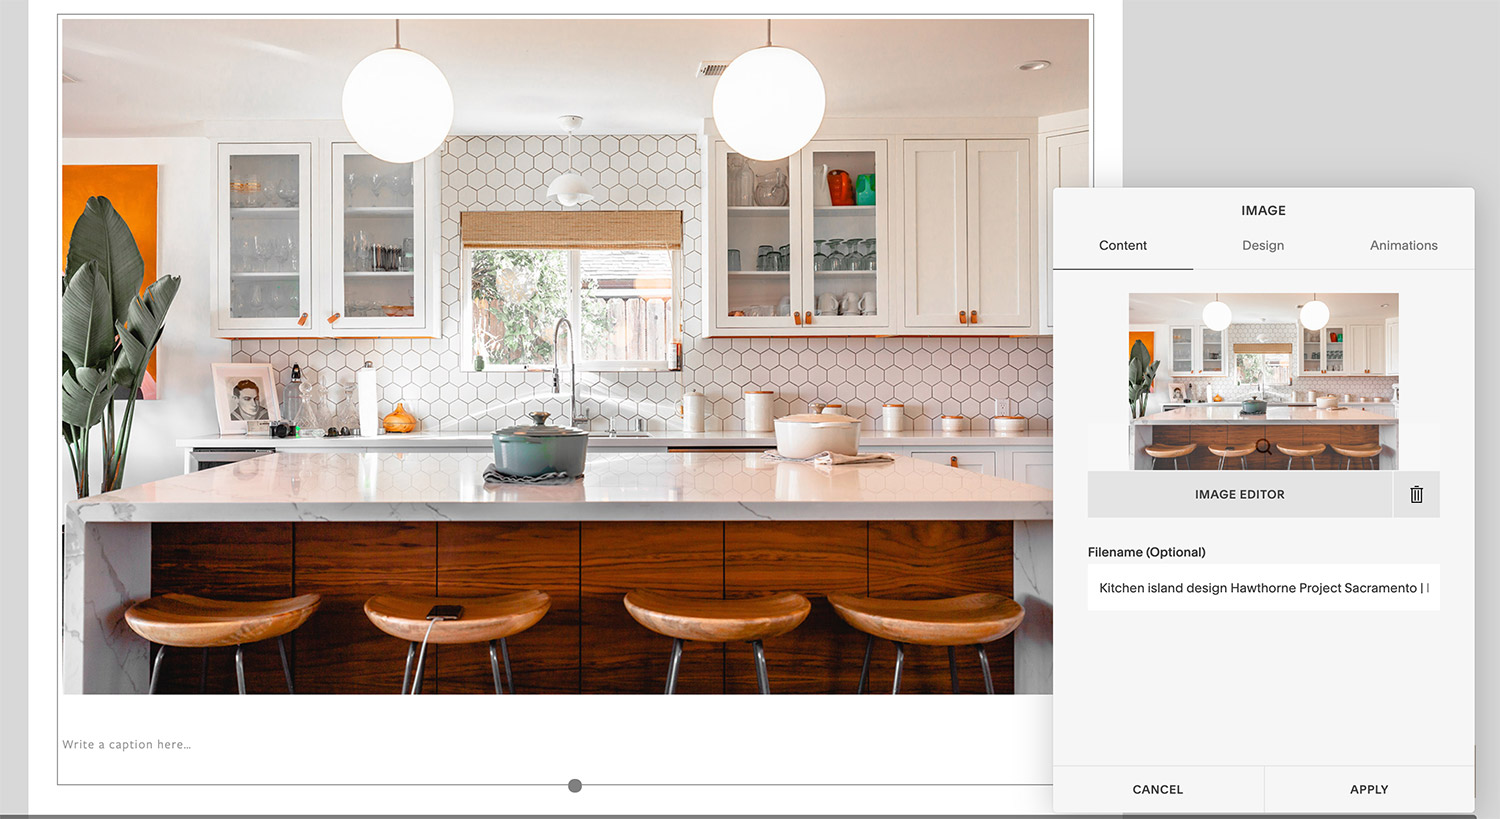 How to change the file name on your Squarespace image when uploading